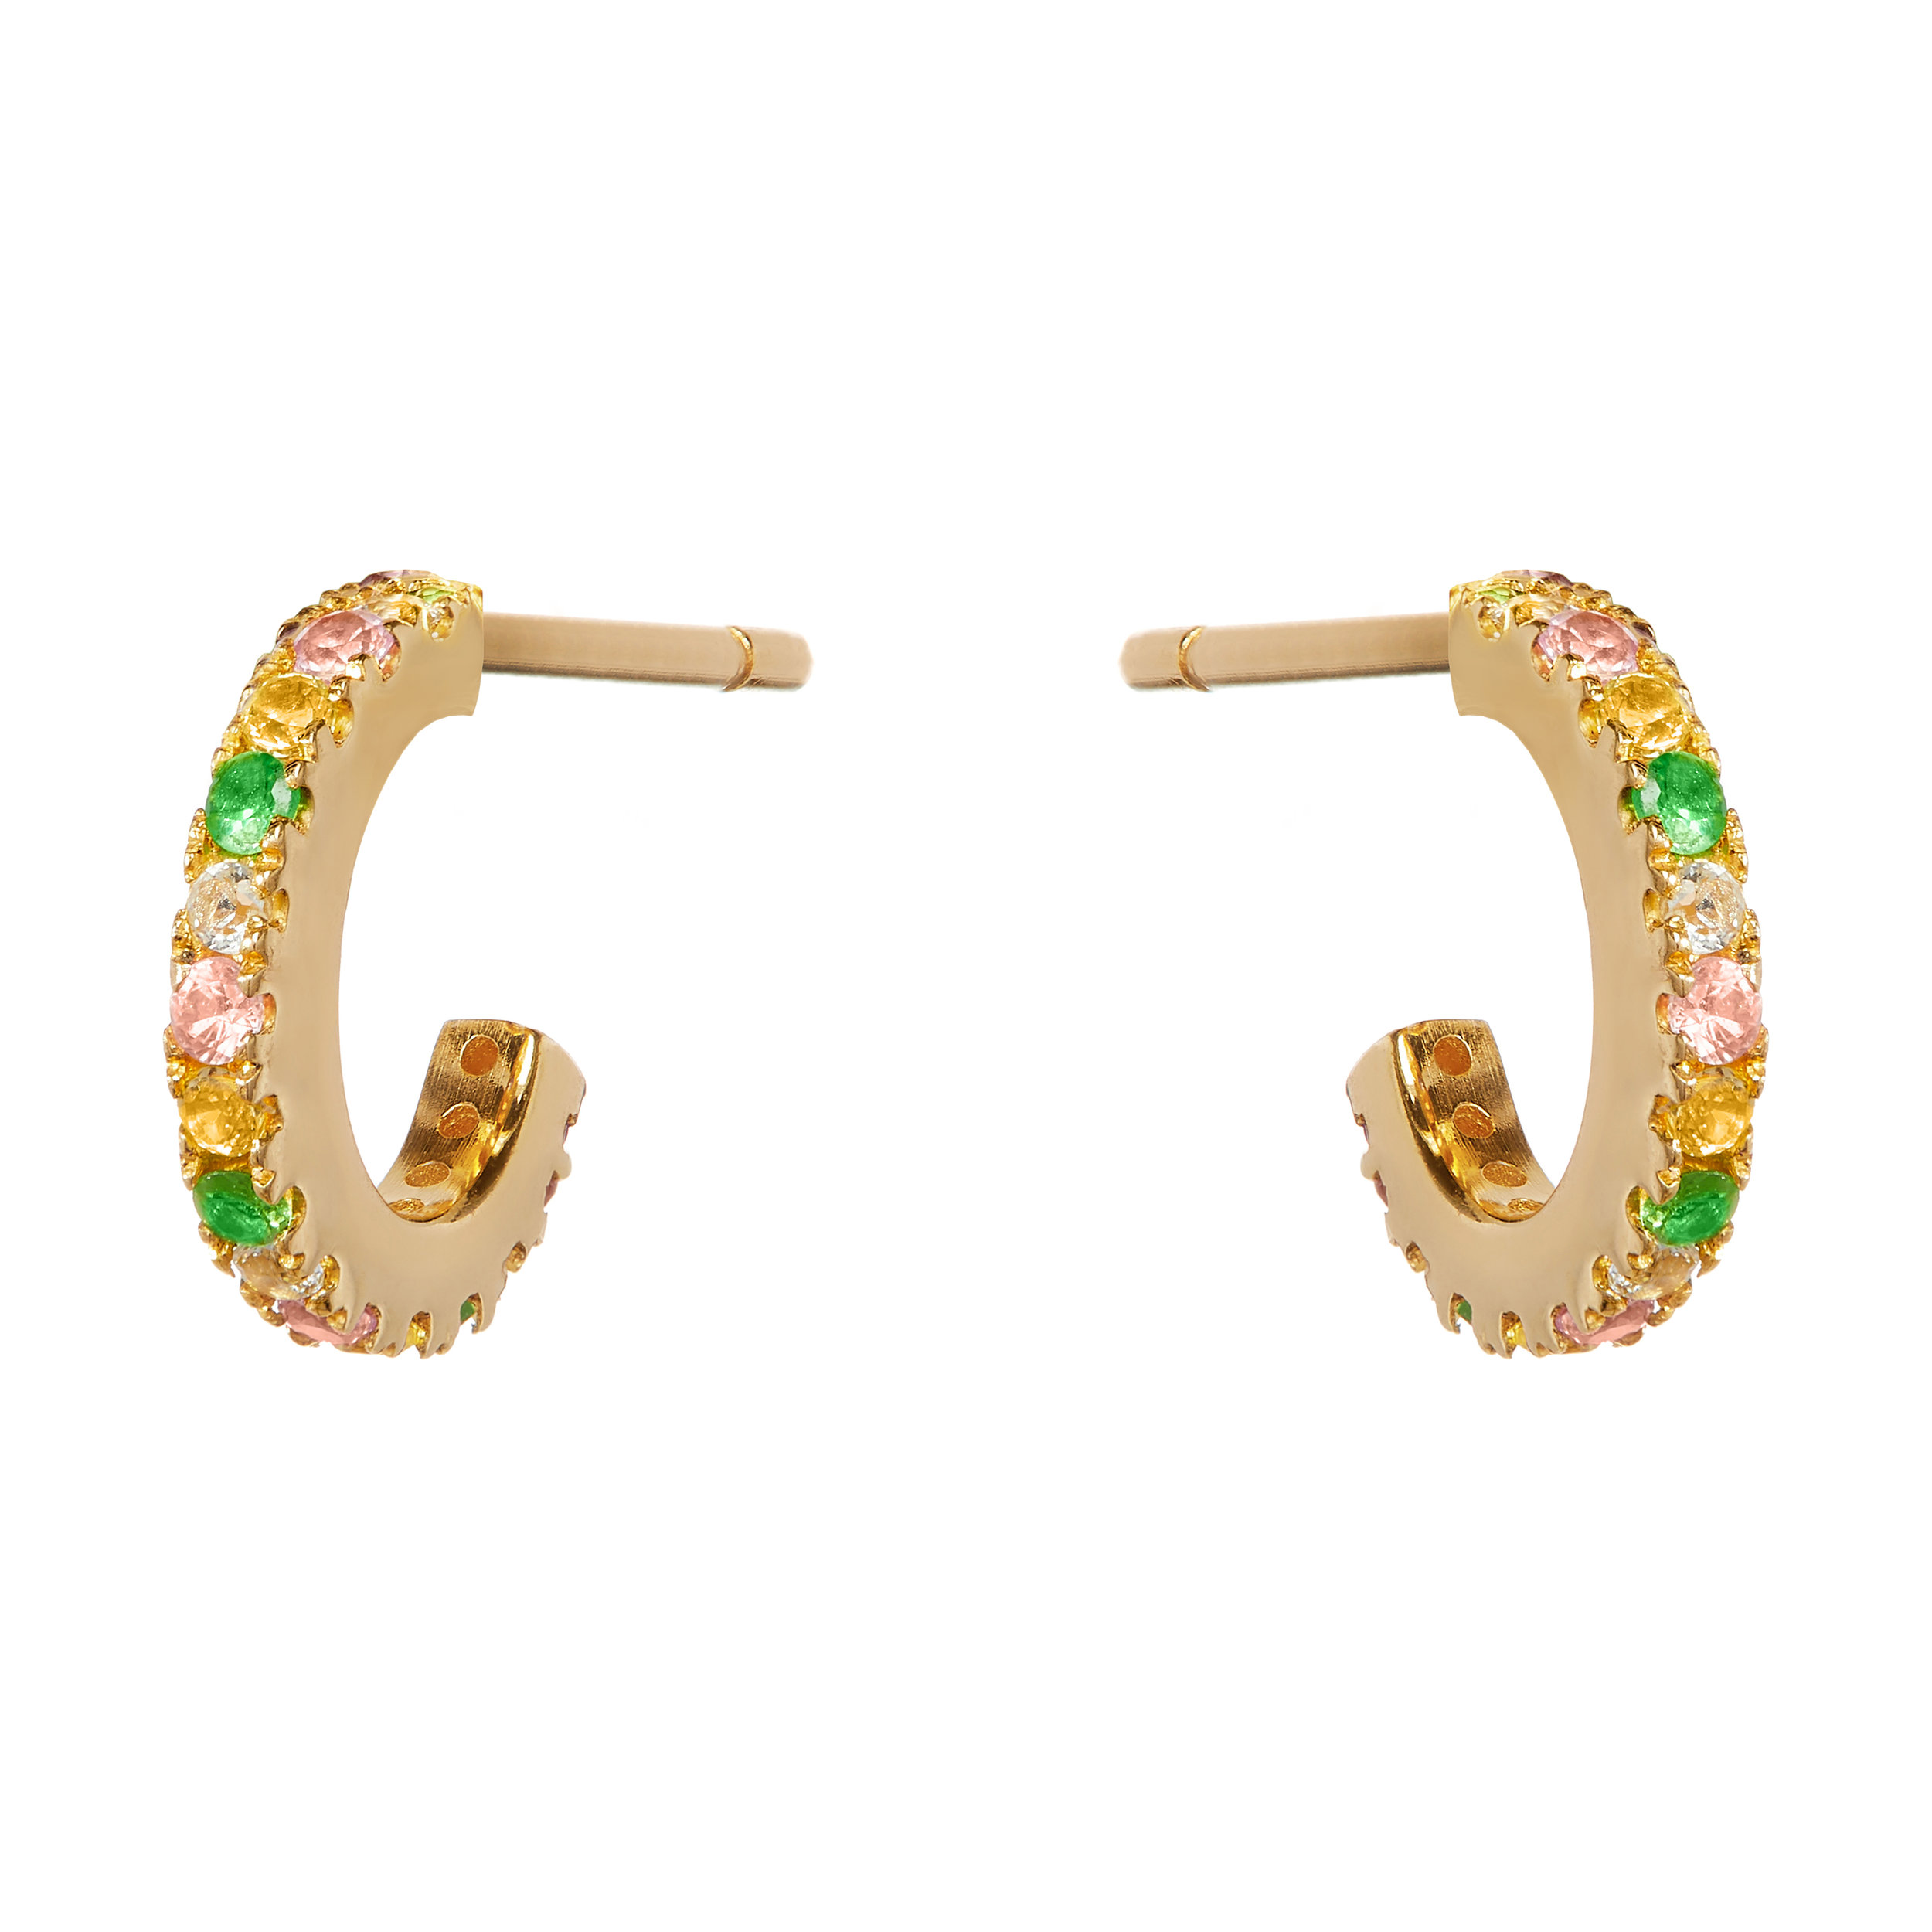 Exotic Summer, Earrings 9ct Yellow Gold Hoop Earrings Pavé Set with Multi-Coloured Stones